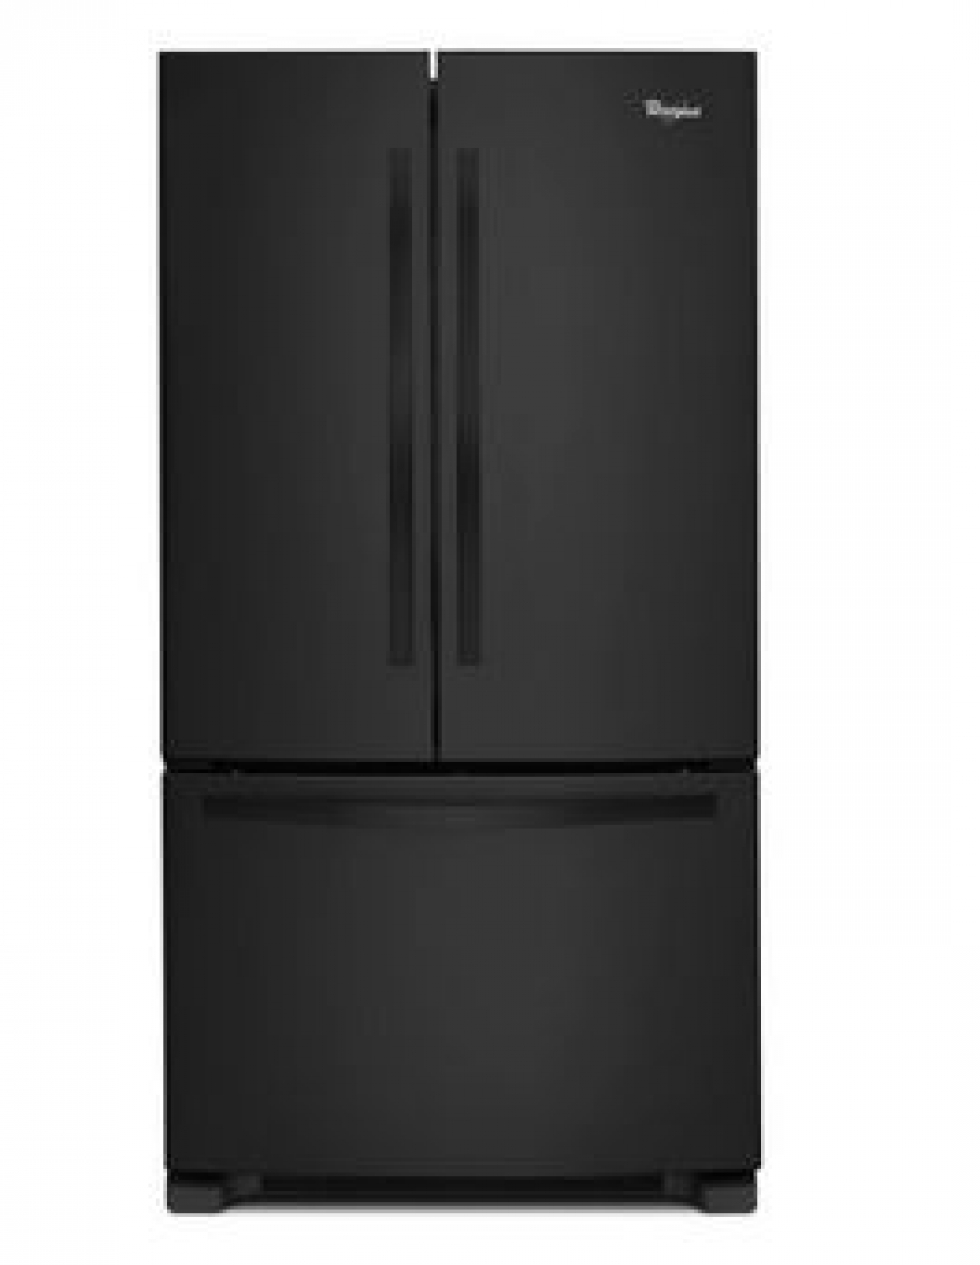 meilleur refrigerateur noir portes pas cher. Black Bedroom Furniture Sets. Home Design Ideas